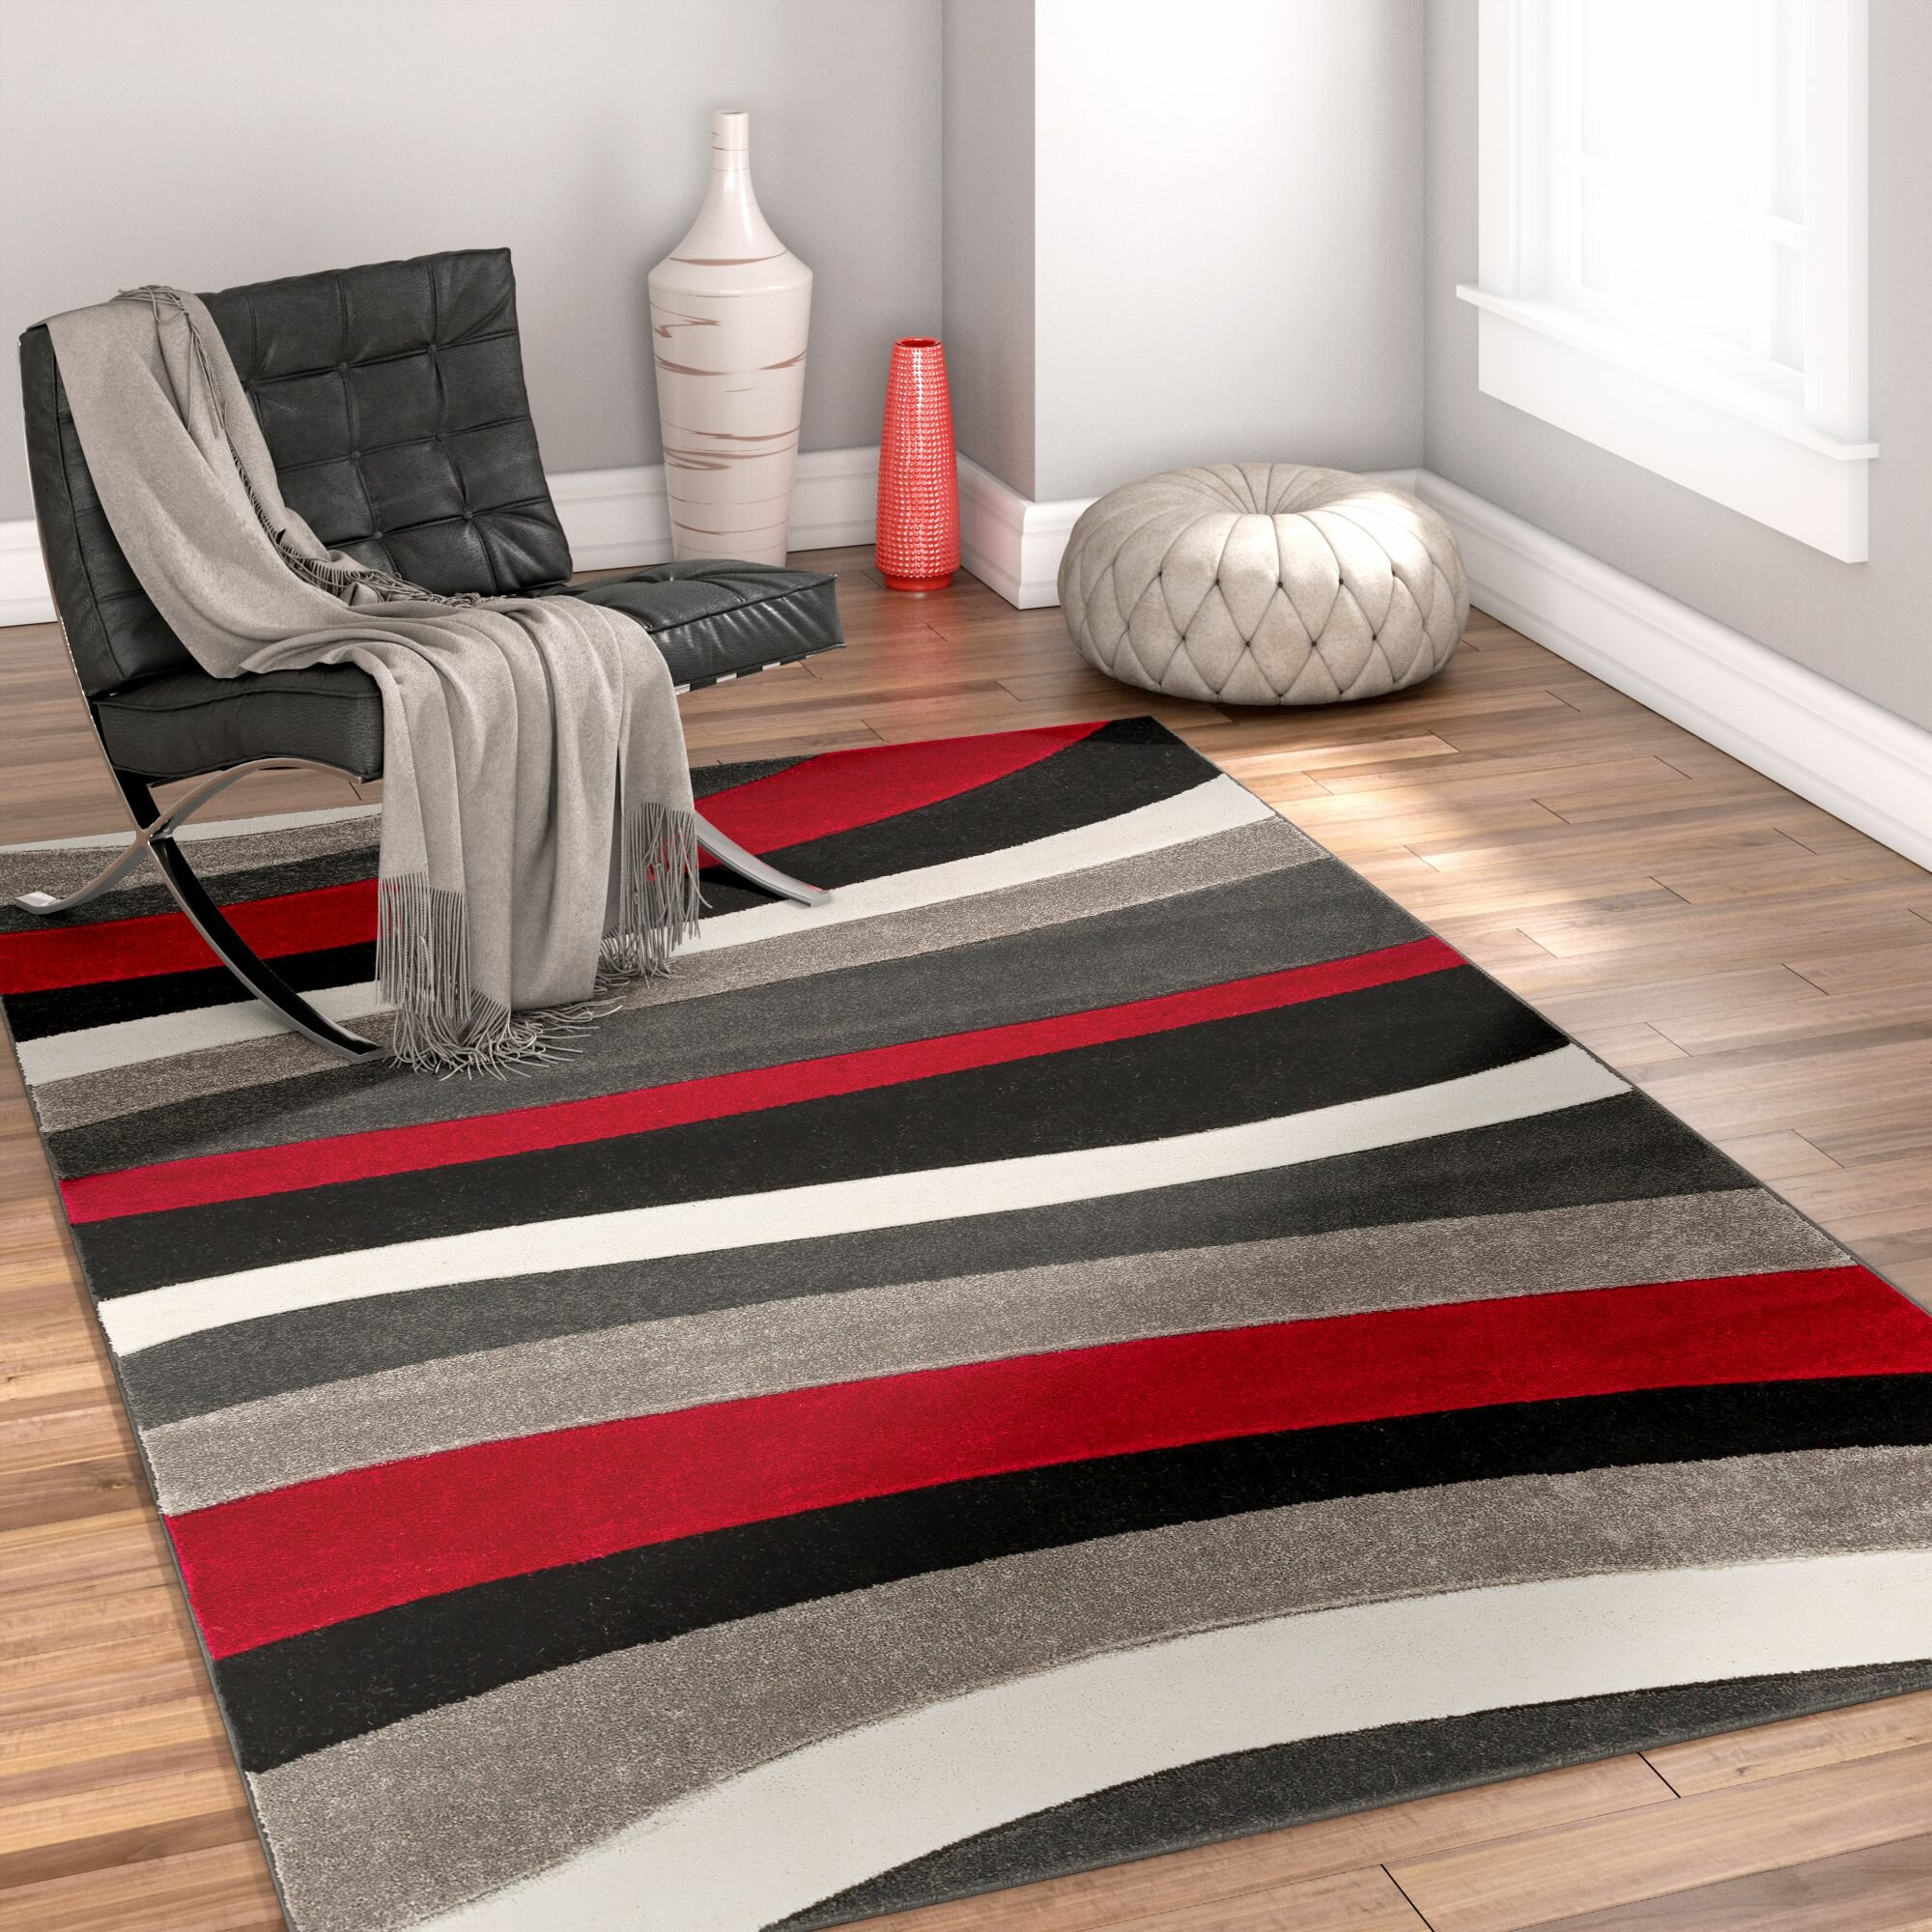 Well Woven Rad Wave Red Gray Black Area Rug Reviews Wayfair